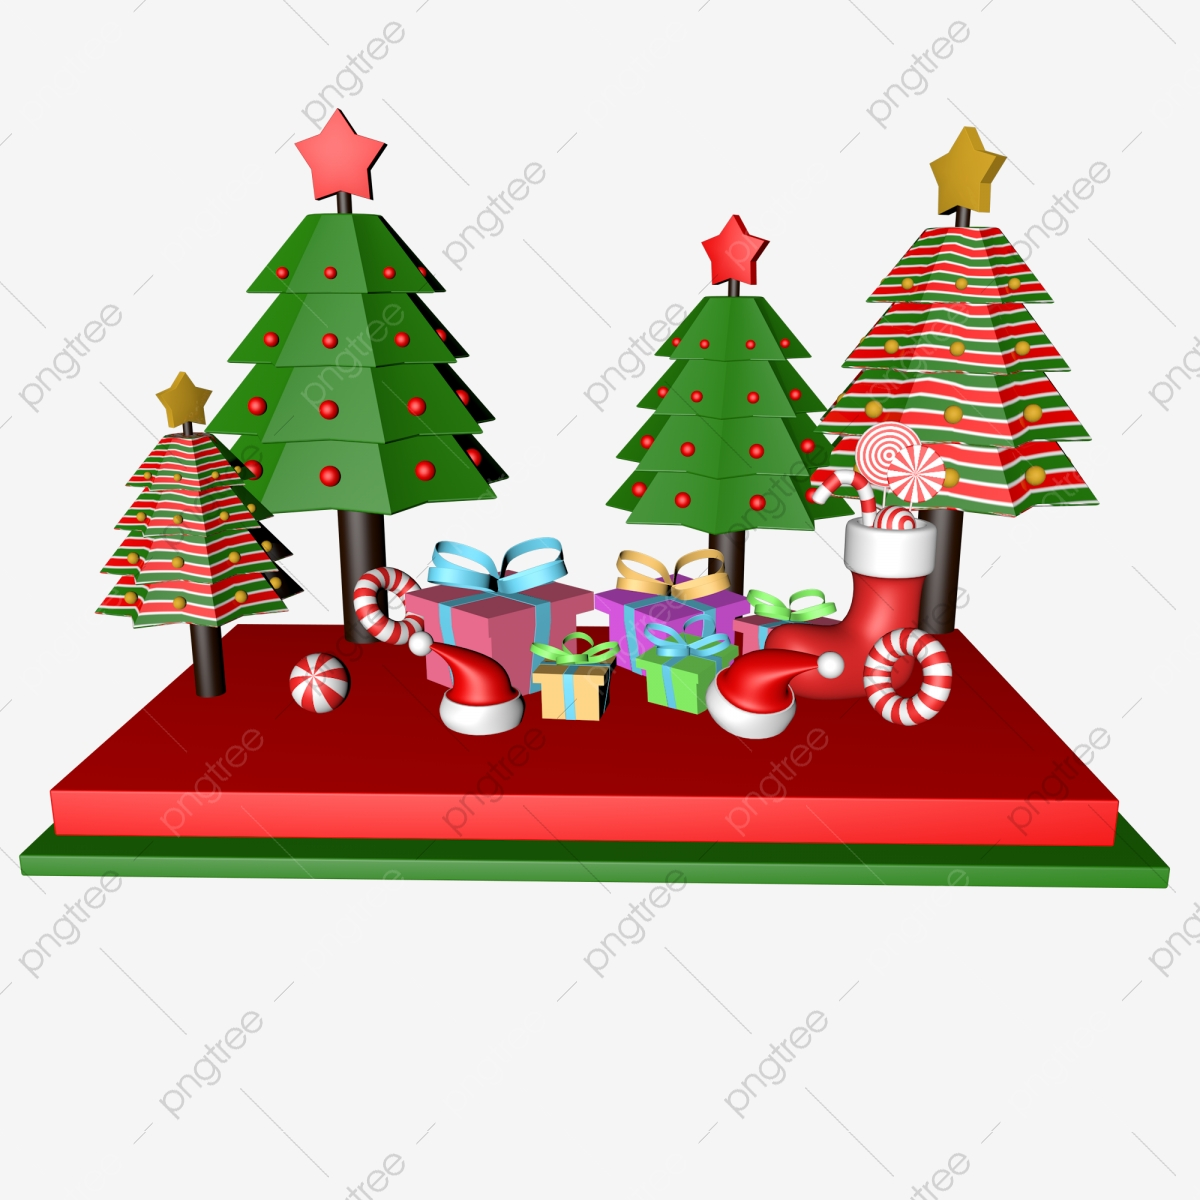 C4d Christmas Tree Gift Hat Sock Candy Scene C4d Christmas Christmas Tree Png Transparent Image And Clipart For Free Download